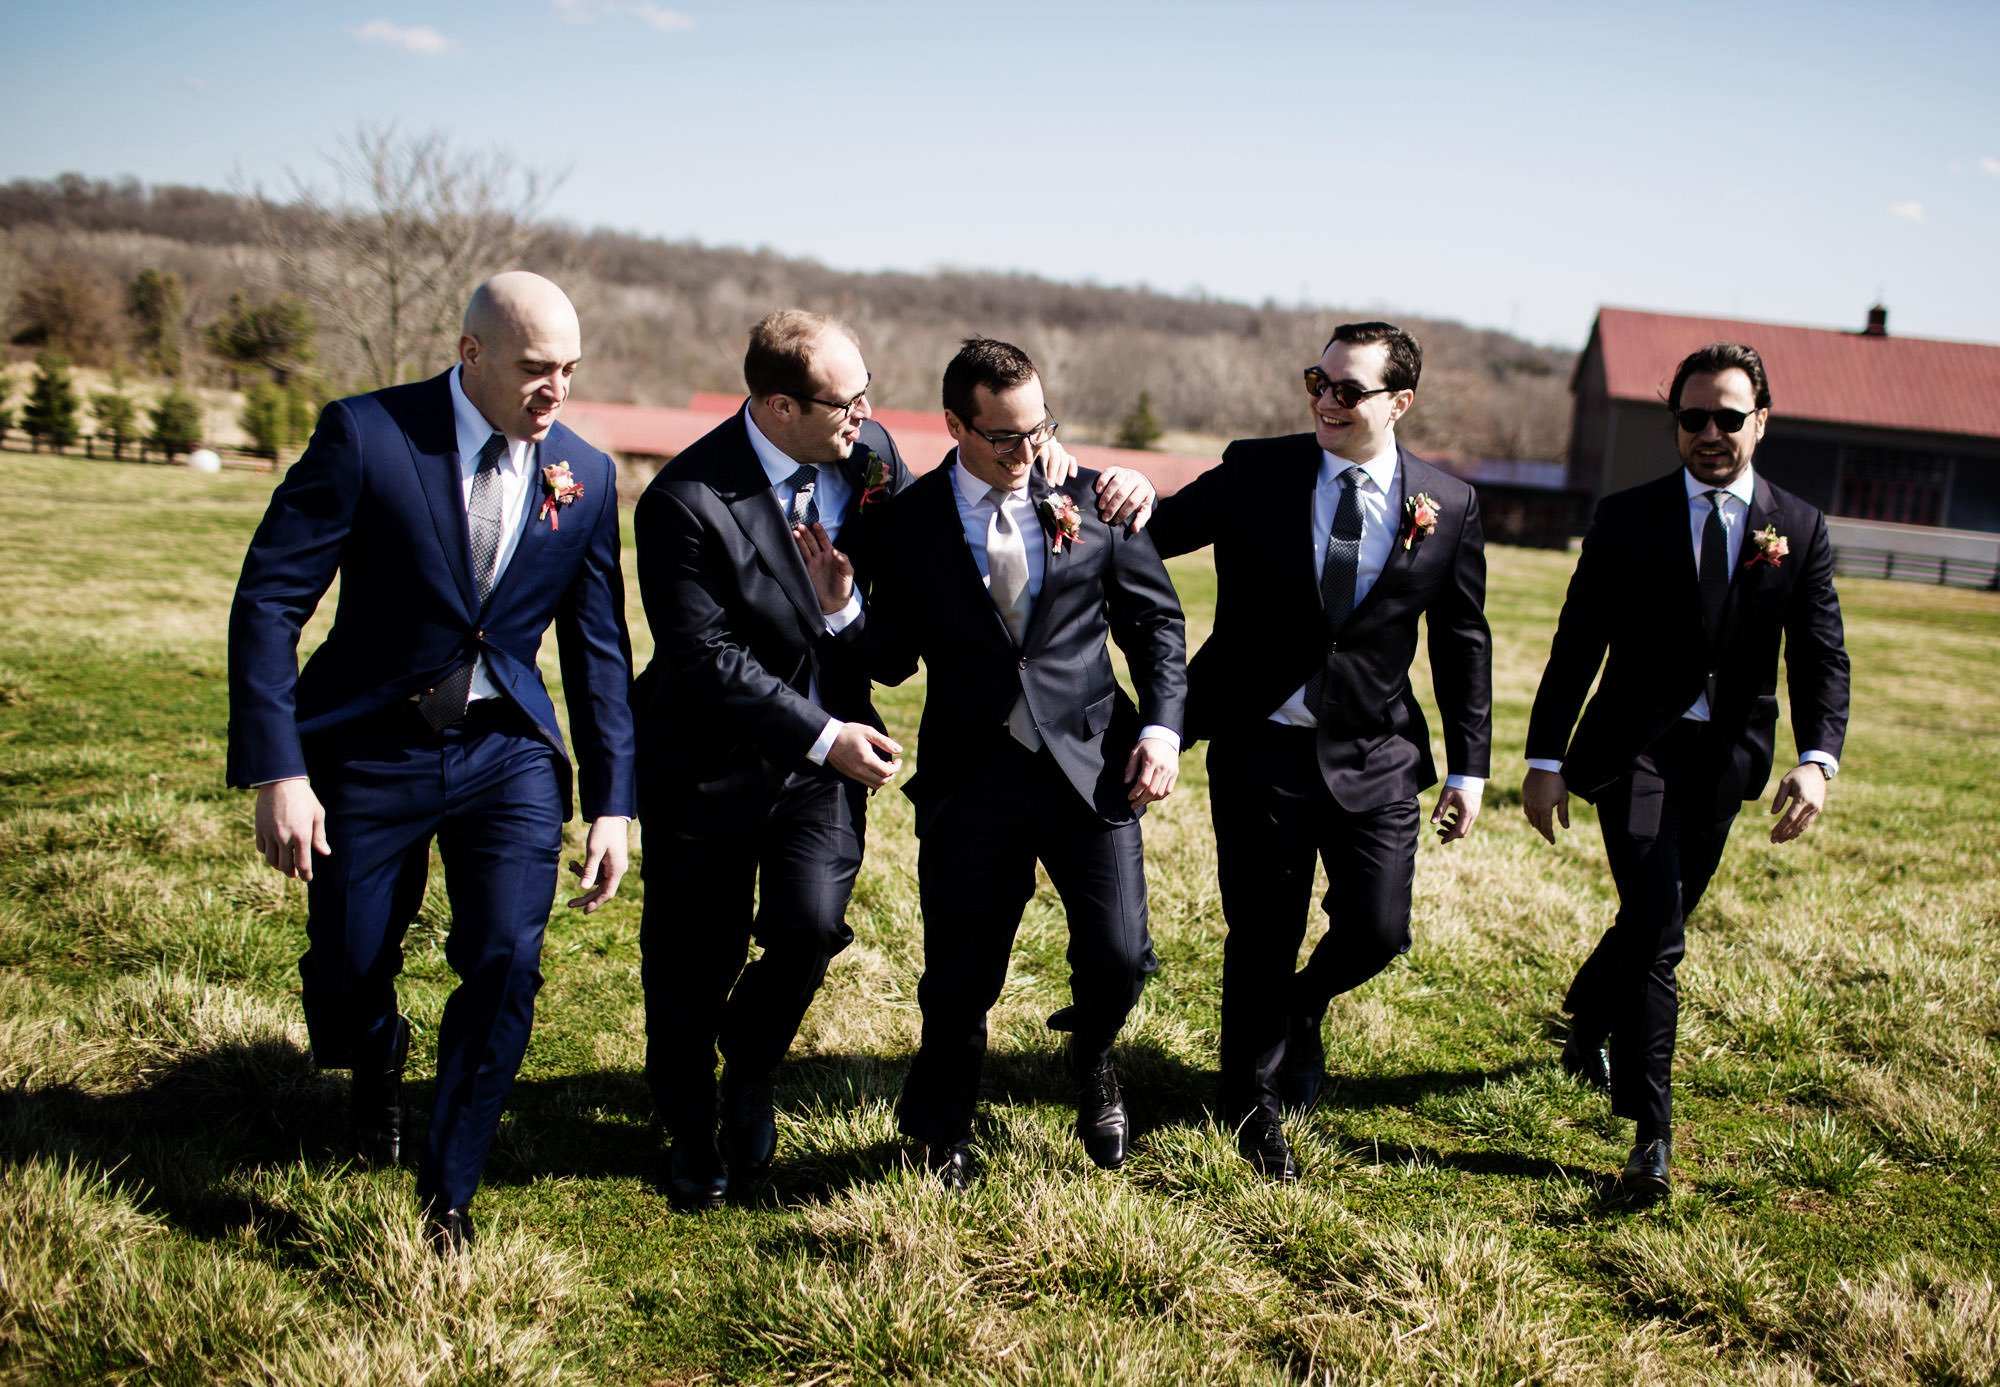 Riverside on the Potomac Wedding in Leesburg, VA  I  The grooms walks through a field with his groomsmen.